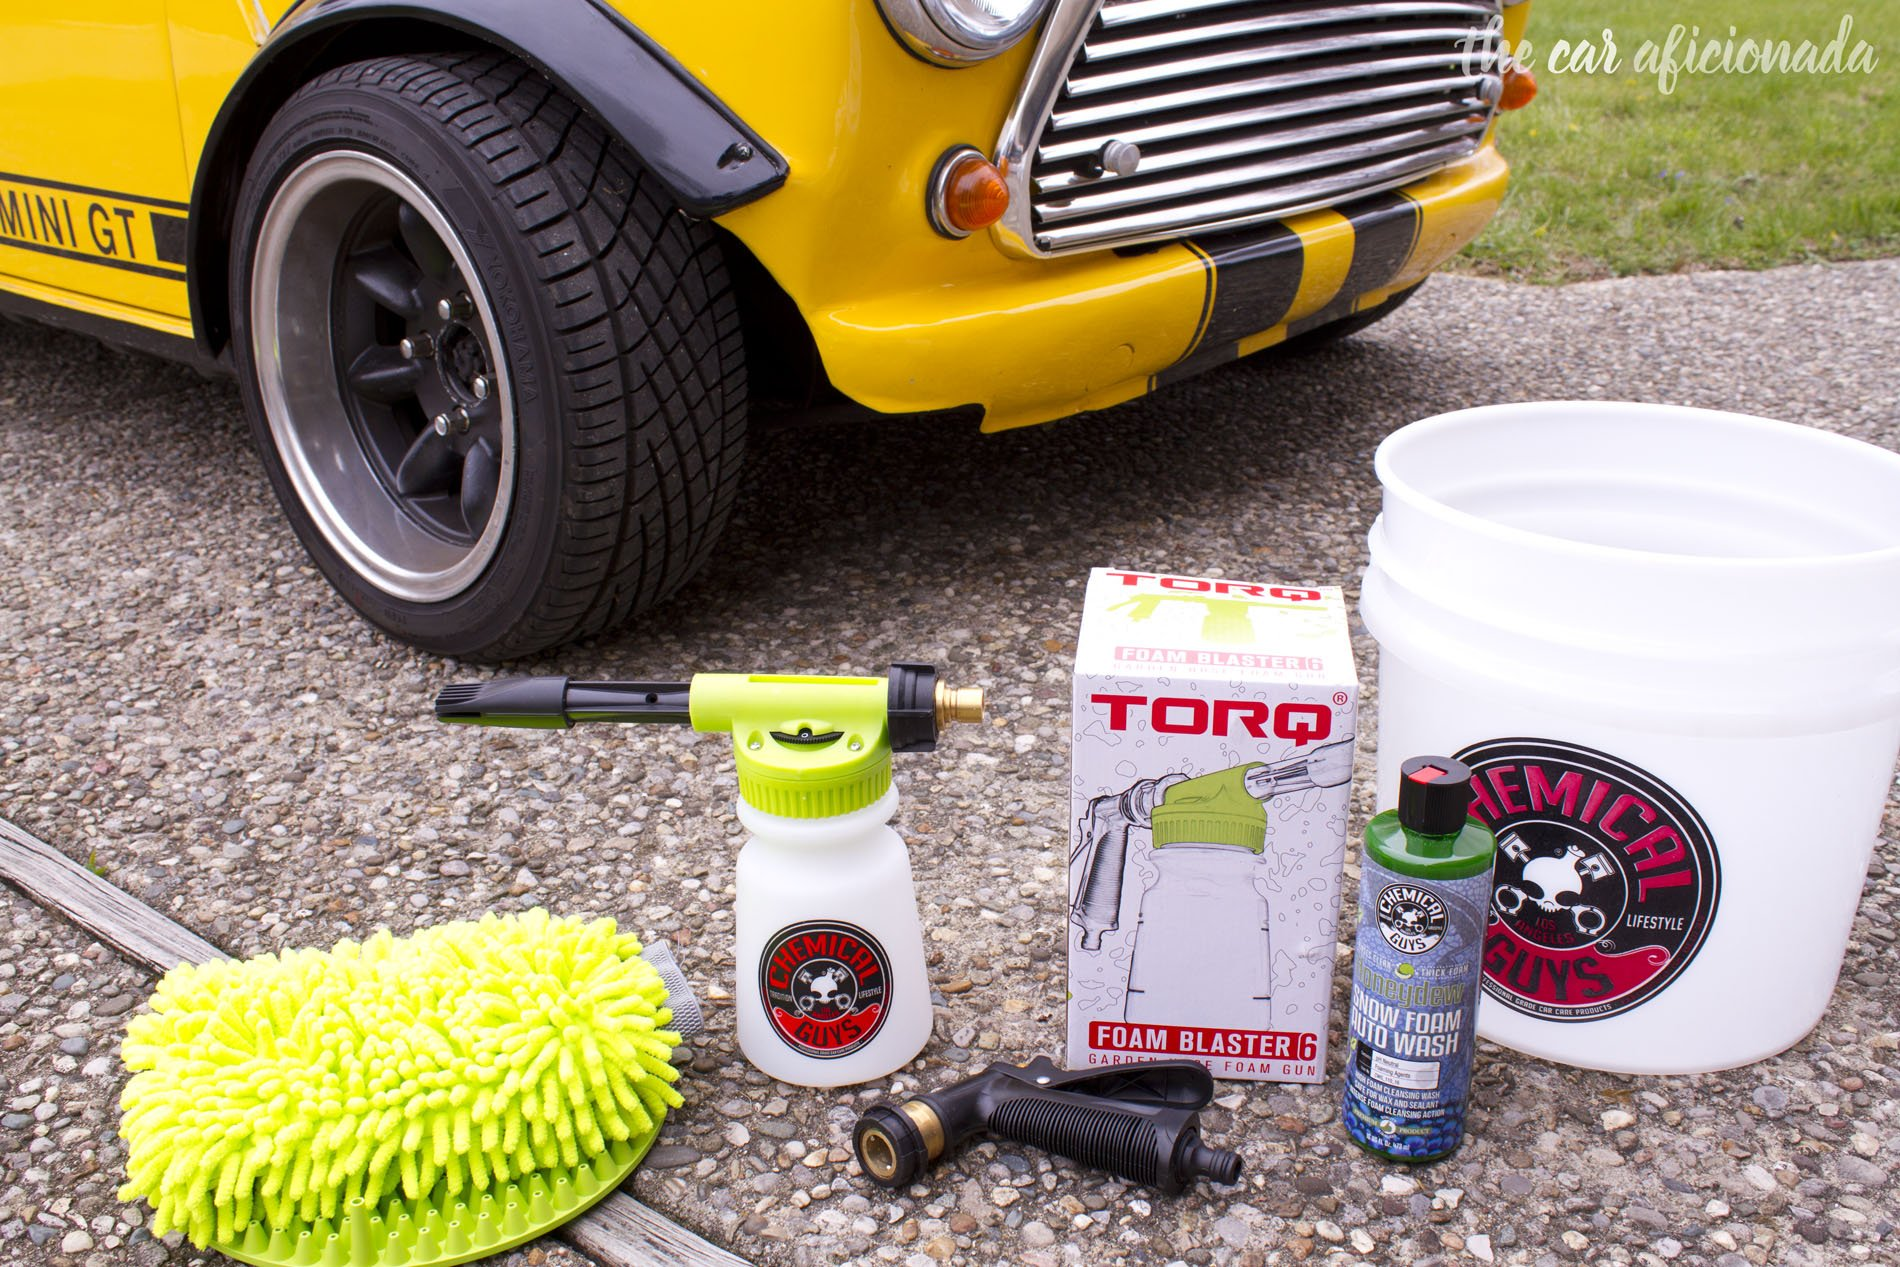 Chemical Guys Torq Foam Blaster 6 kit